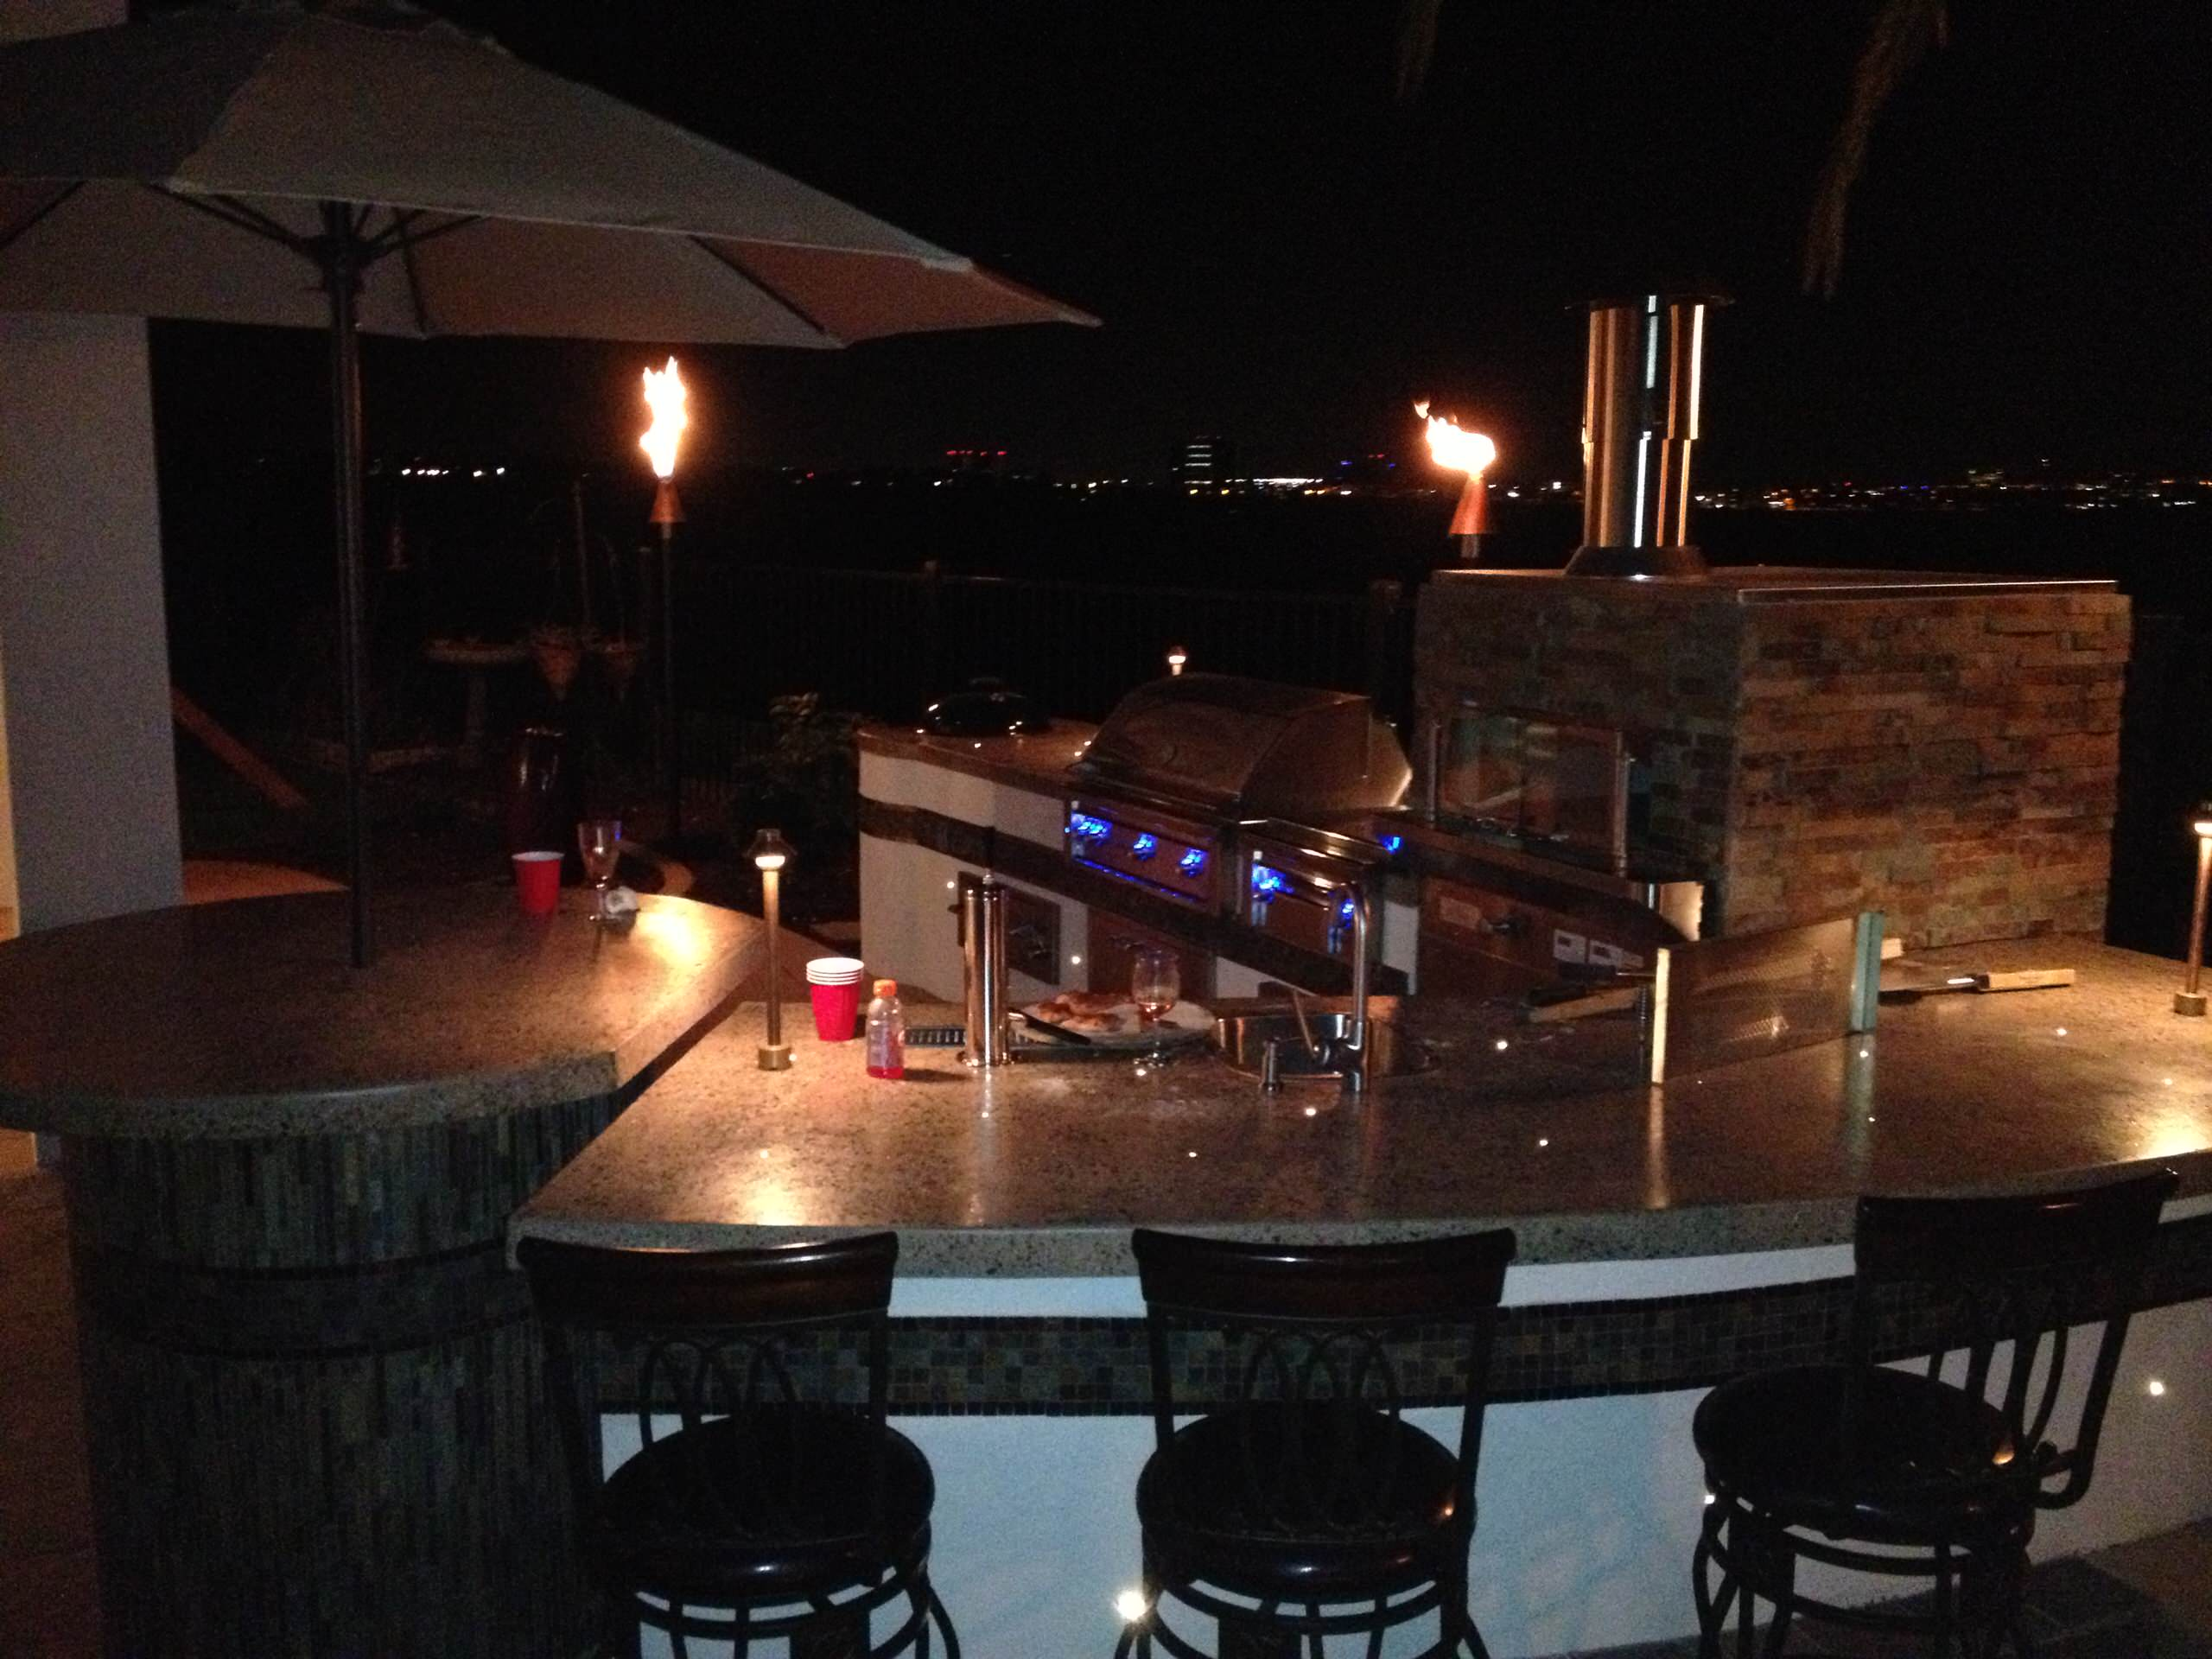 Carmel Valley Outdoor Kitchen with Countertop Lights